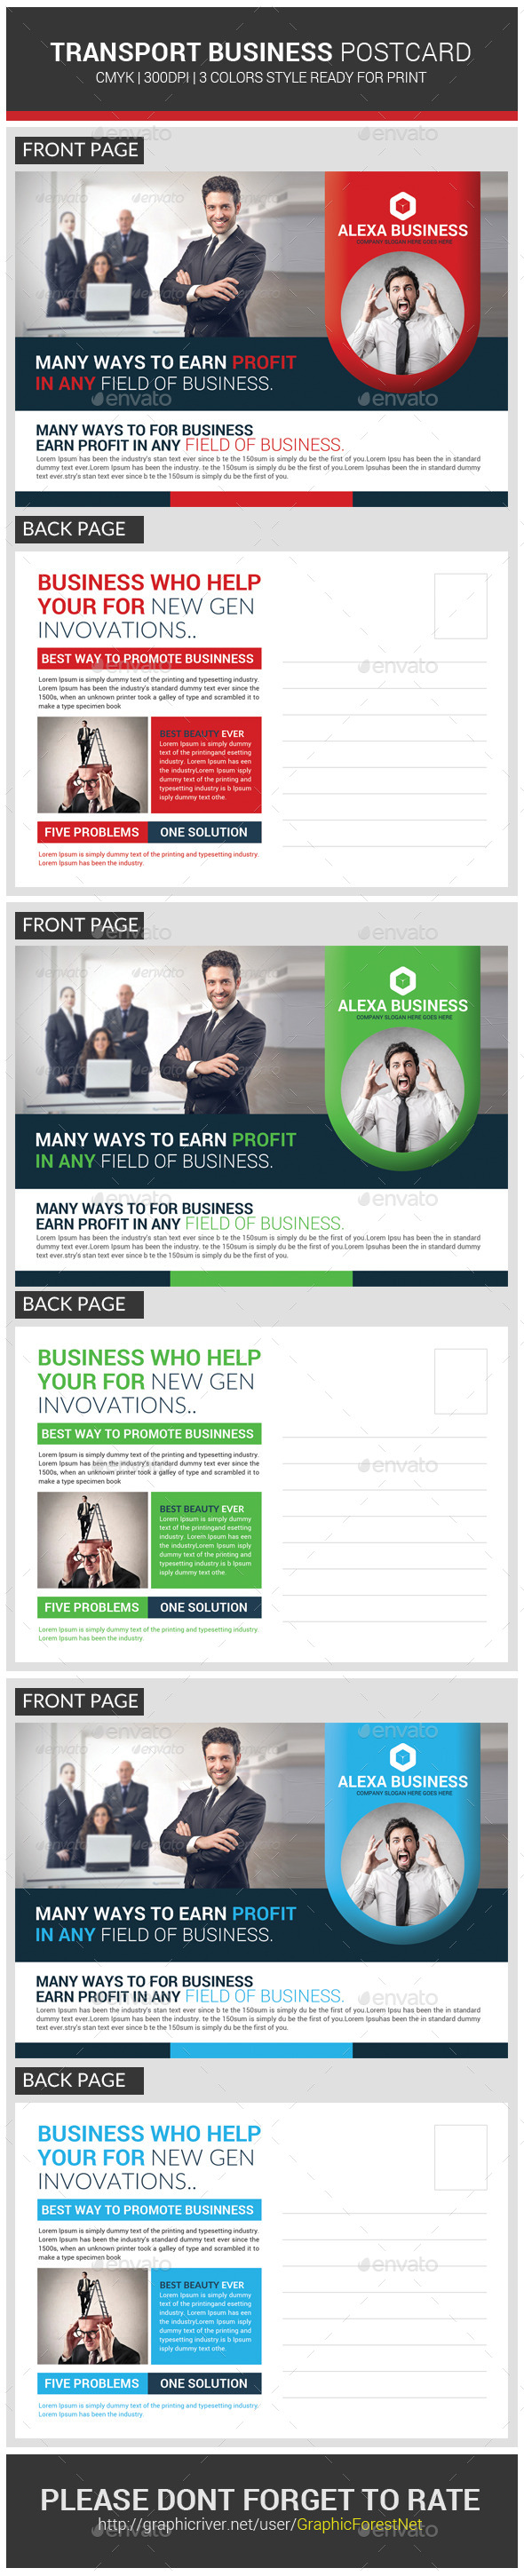 Transport business postcard template business postcards postcard transport business postcard template accmission Gallery